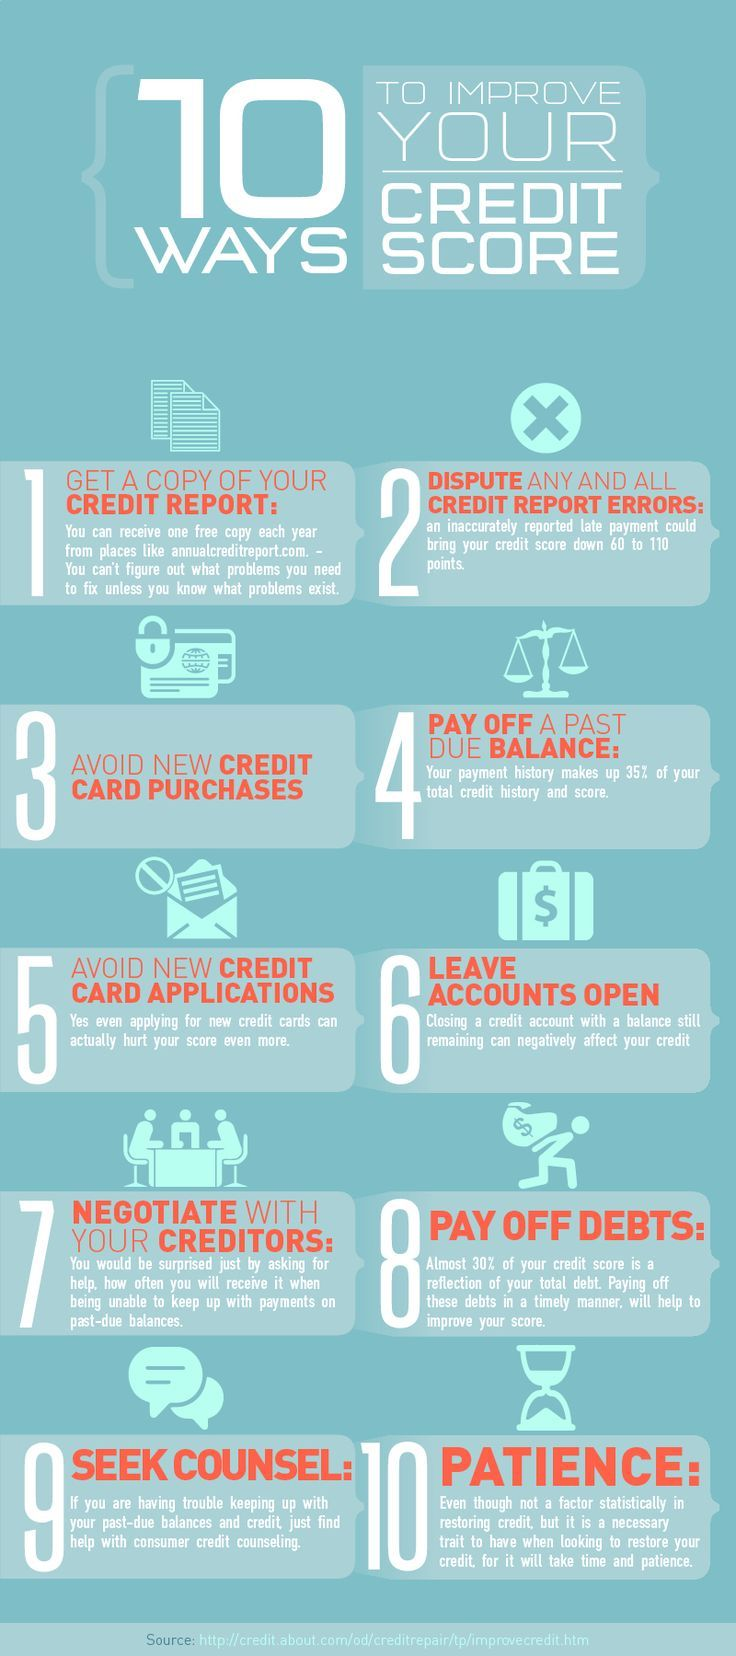 Pin By Dimitra White On Money Improve Your Credit Score Credit Score Credit Repair Companies